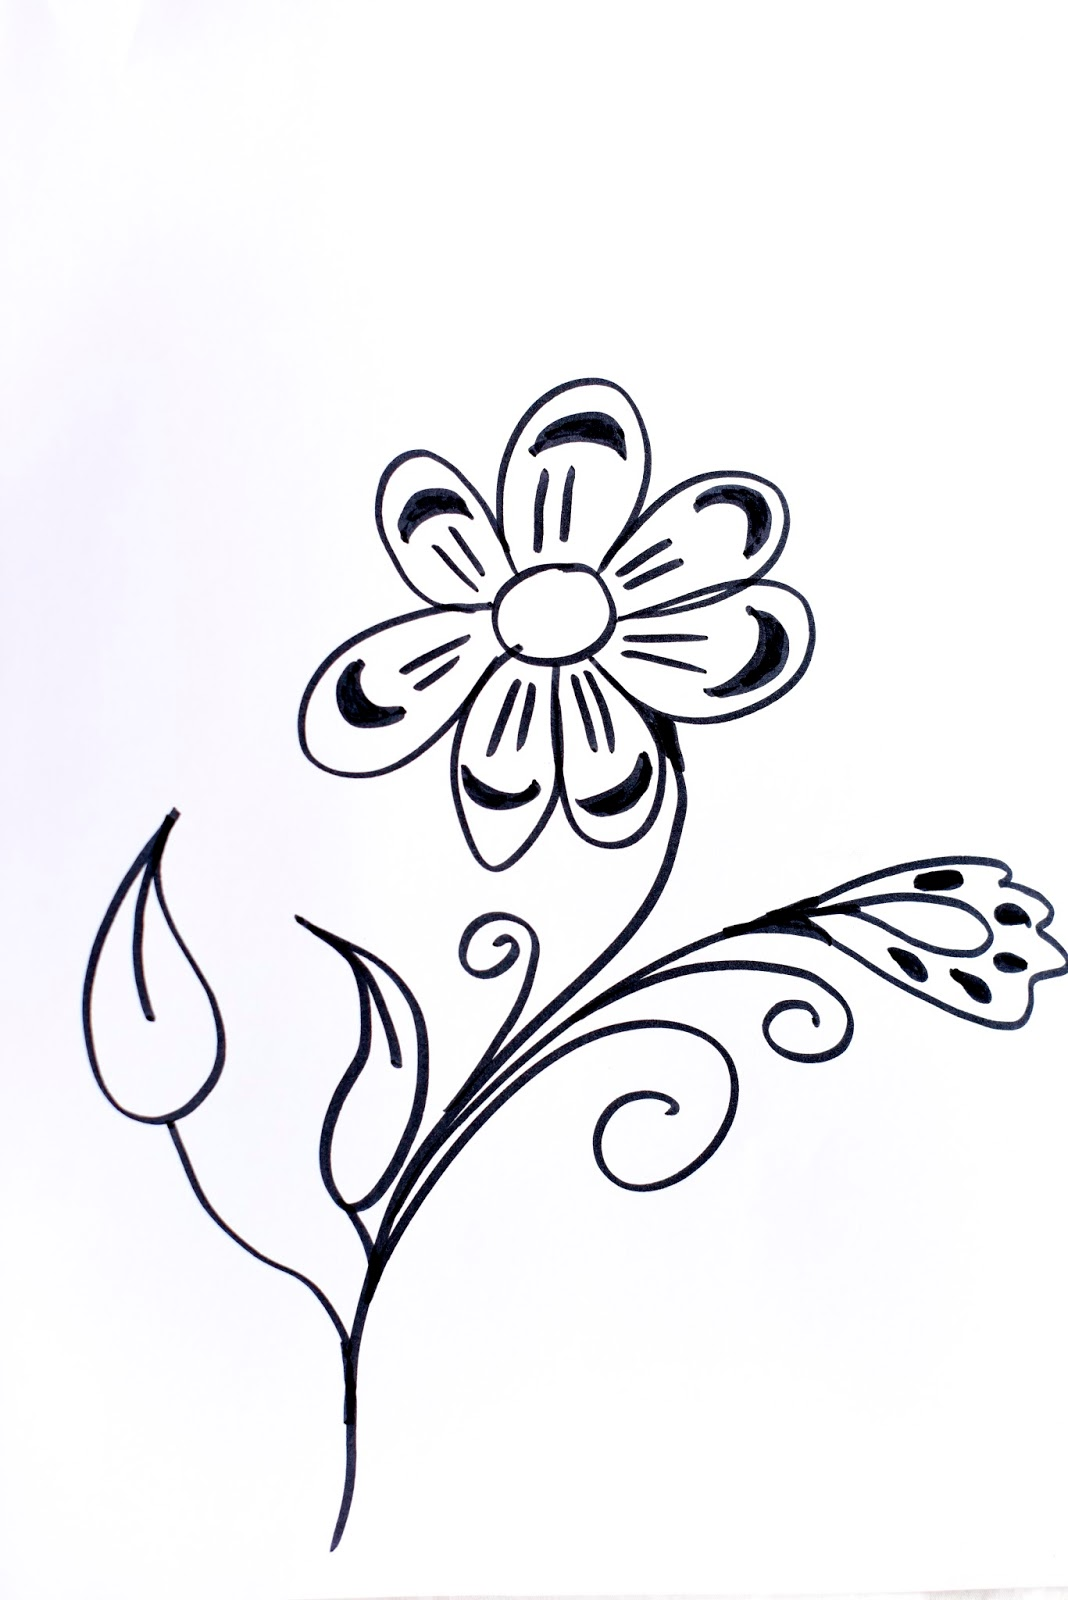 Line Drawing Flowers 15 : Lettering line drawing motivation how to draw flowers